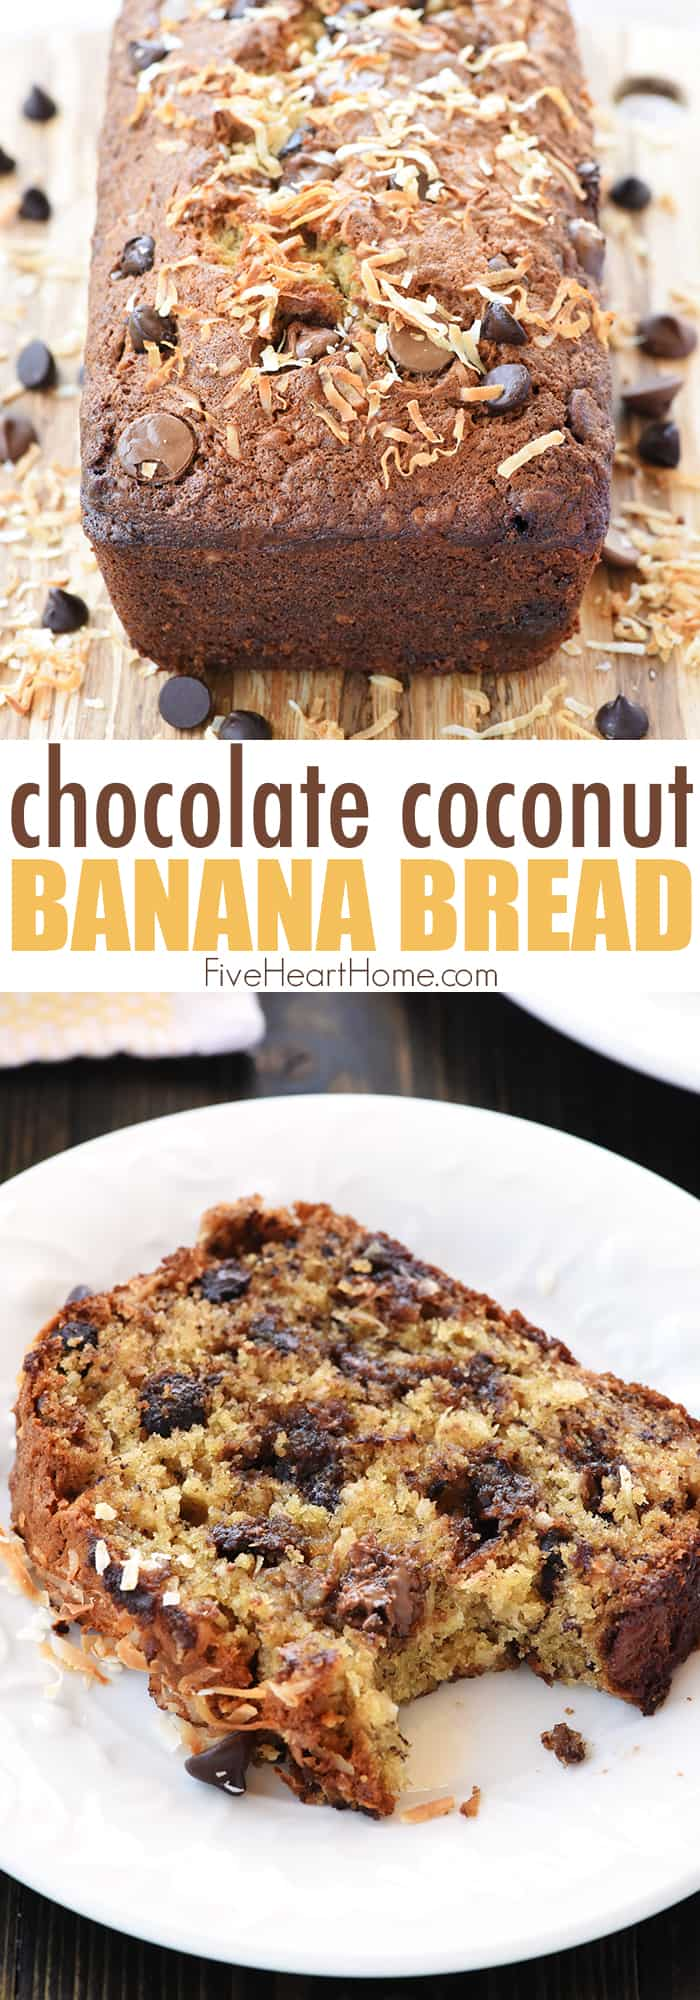 Chocolate Coconut Banana Bread Collage with Text Overlay